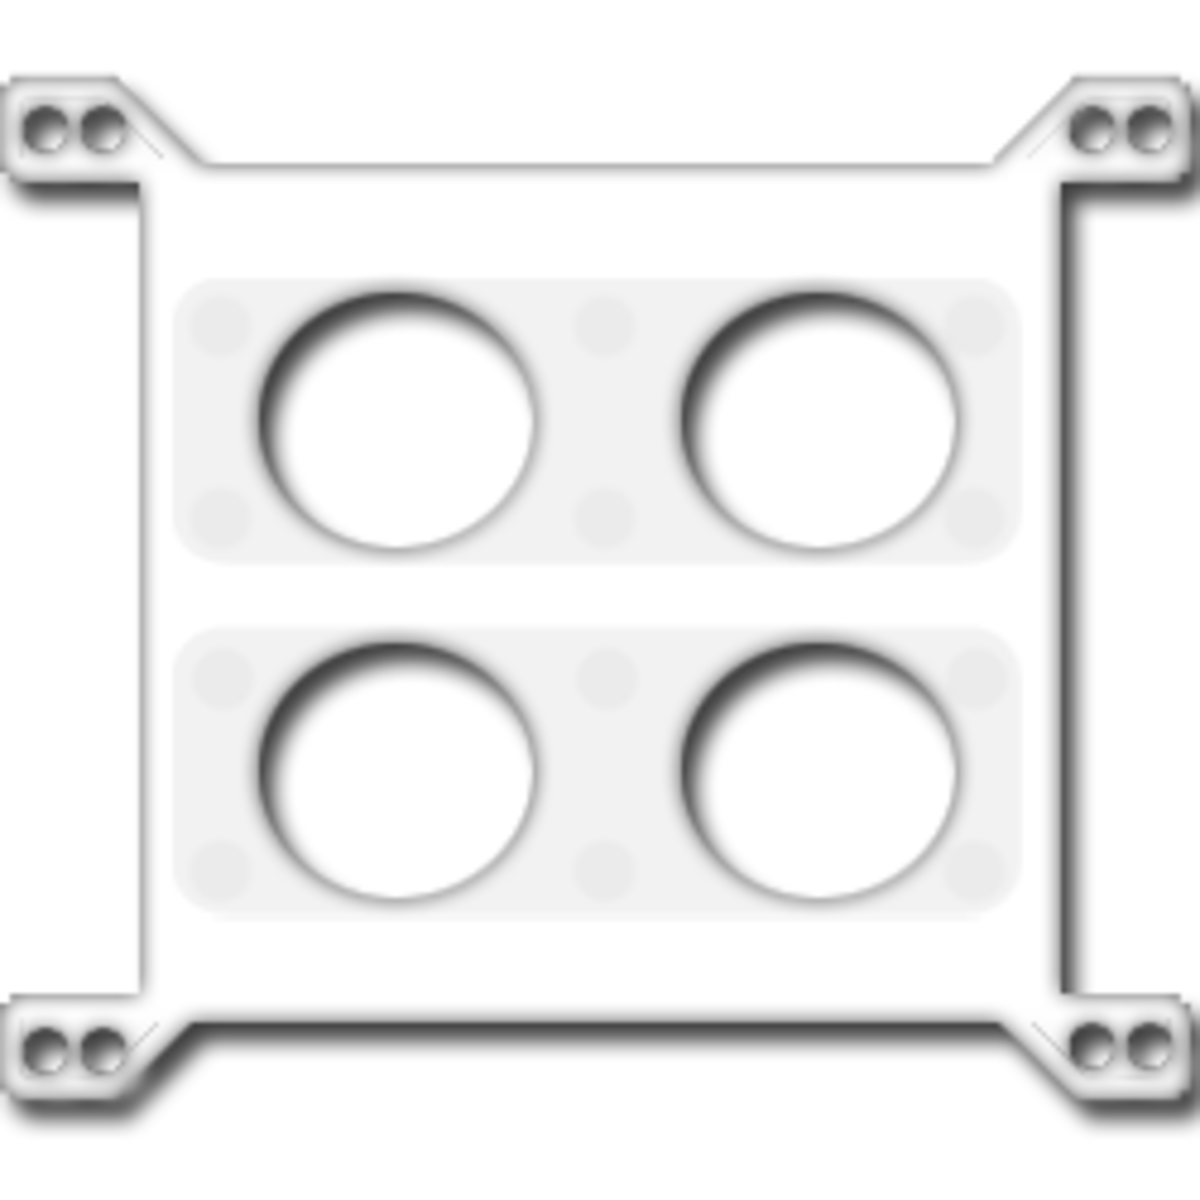 This is an artist's rendering of a restrictor plate.